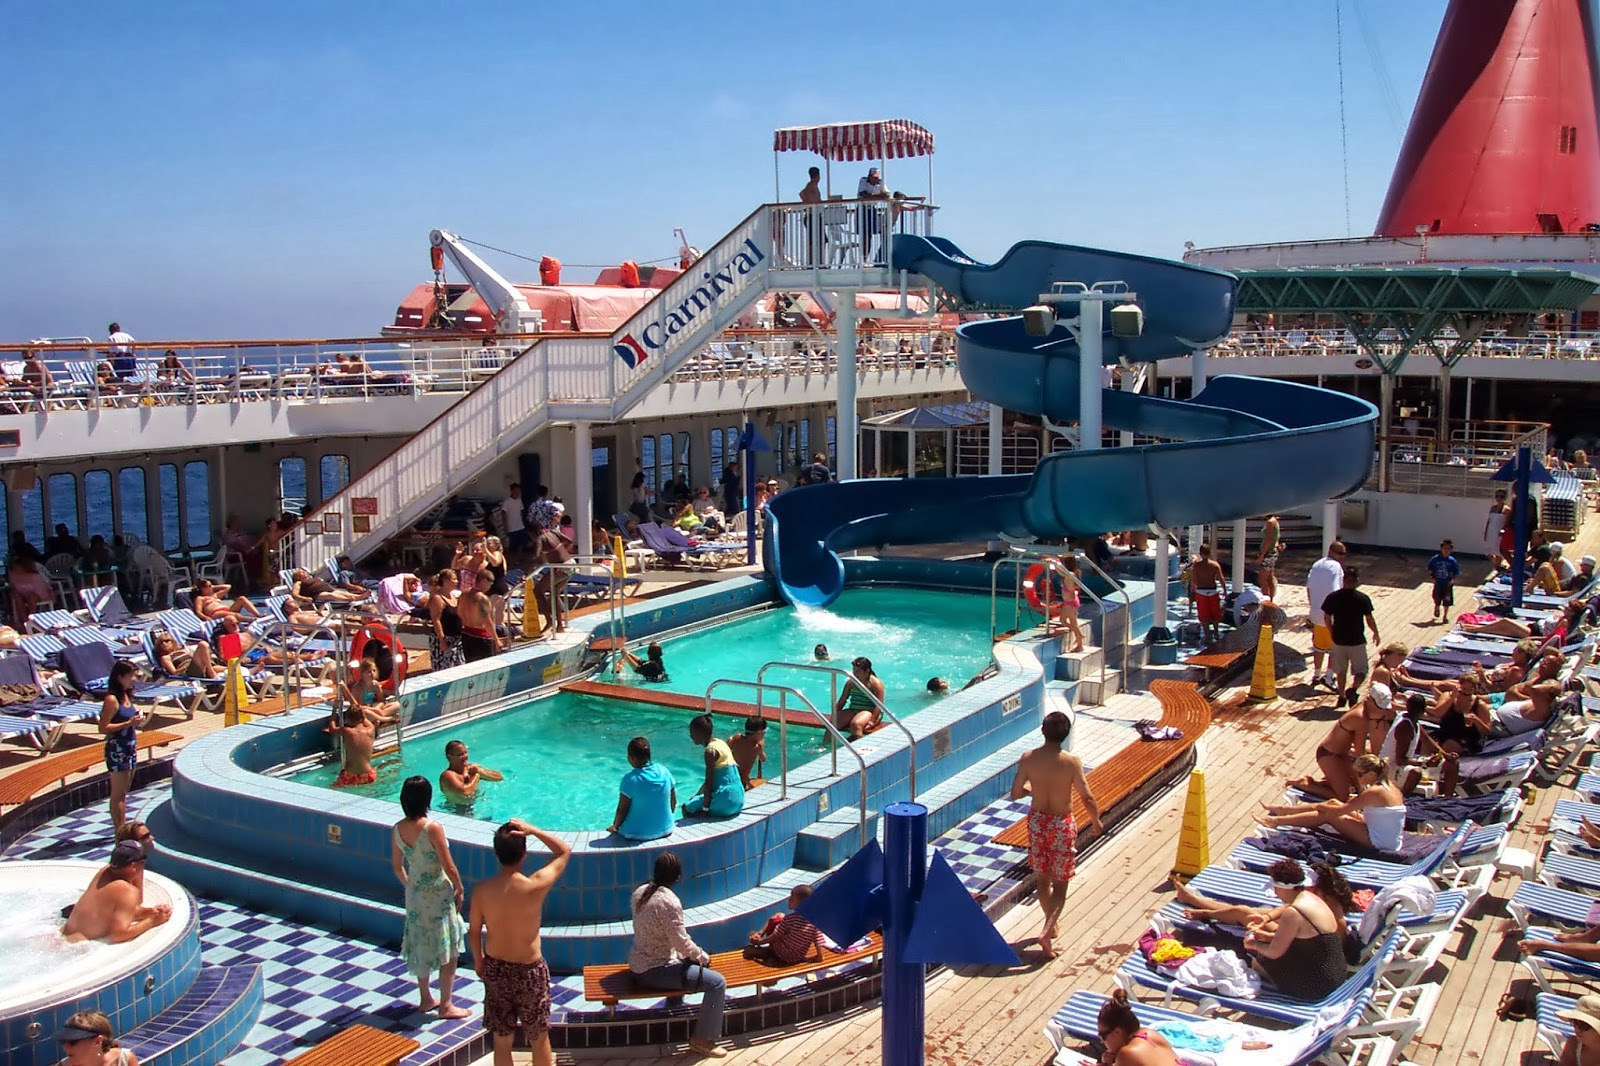 Off Radar Cruise News: Cruise Ship Swimming Pool Tragedy